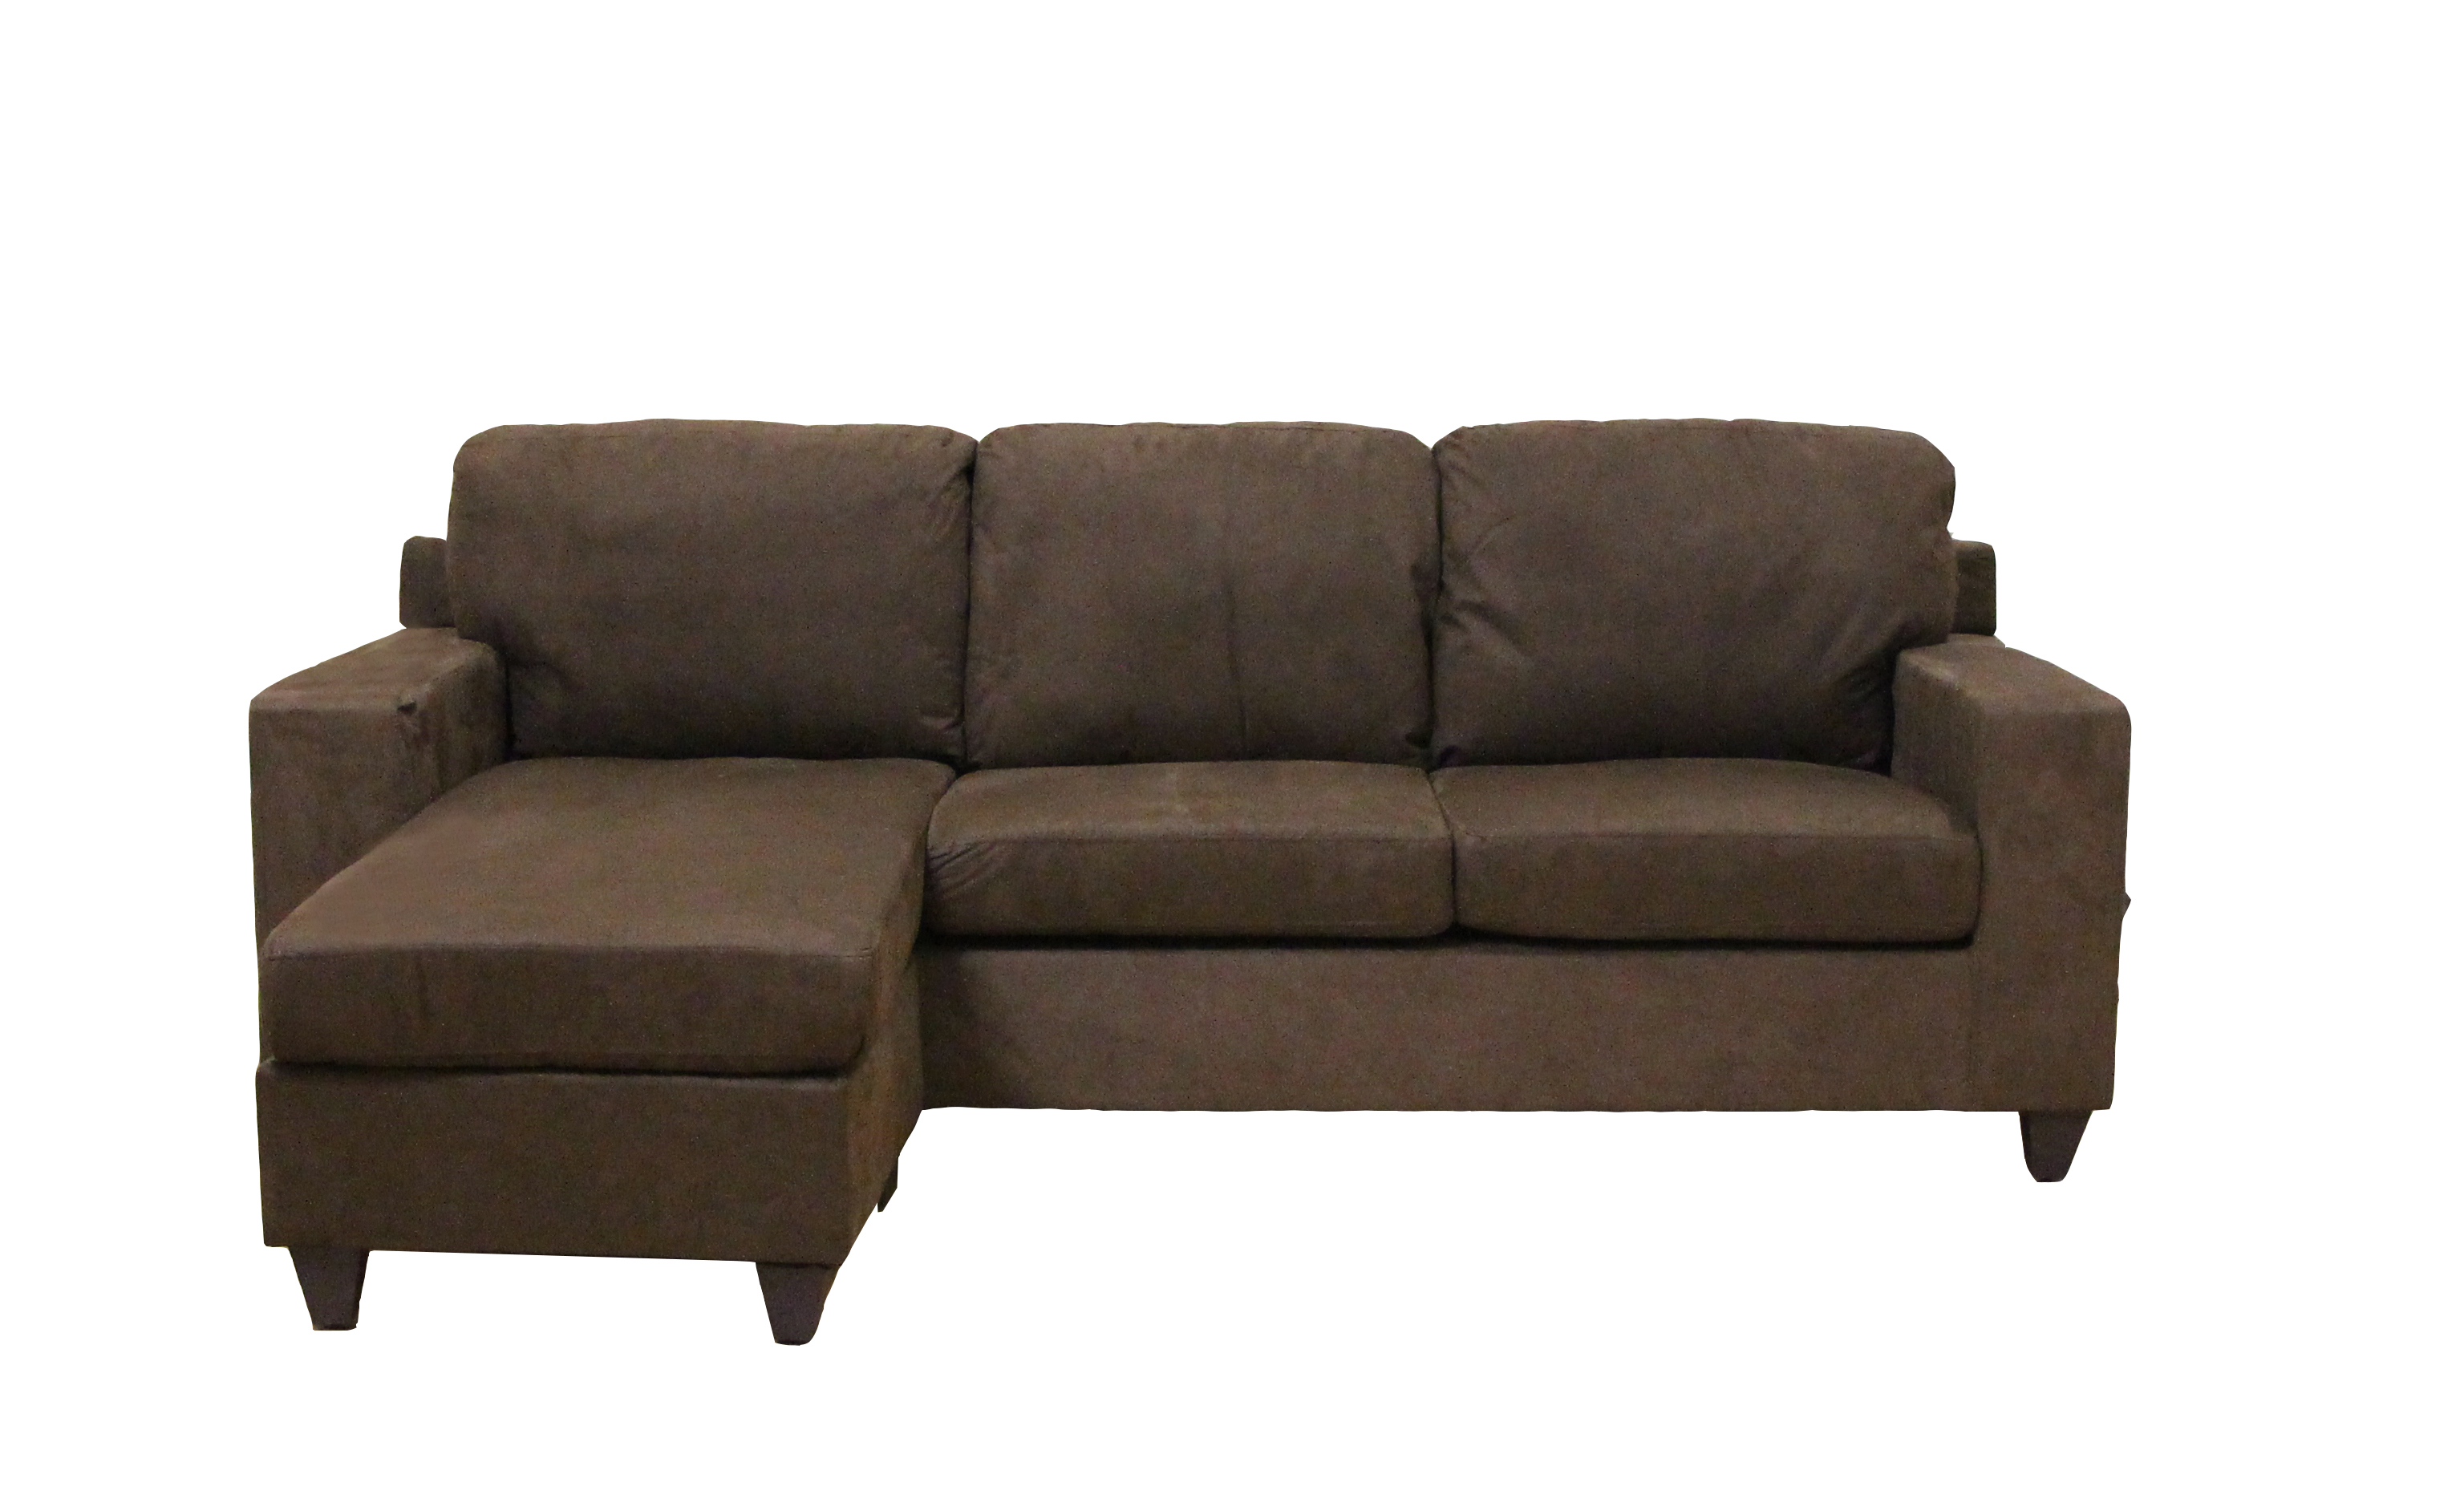 Prime Acme Vogue Sectional Sofa Chocolate Microfiber Bralicious Painted Fabric Chair Ideas Braliciousco